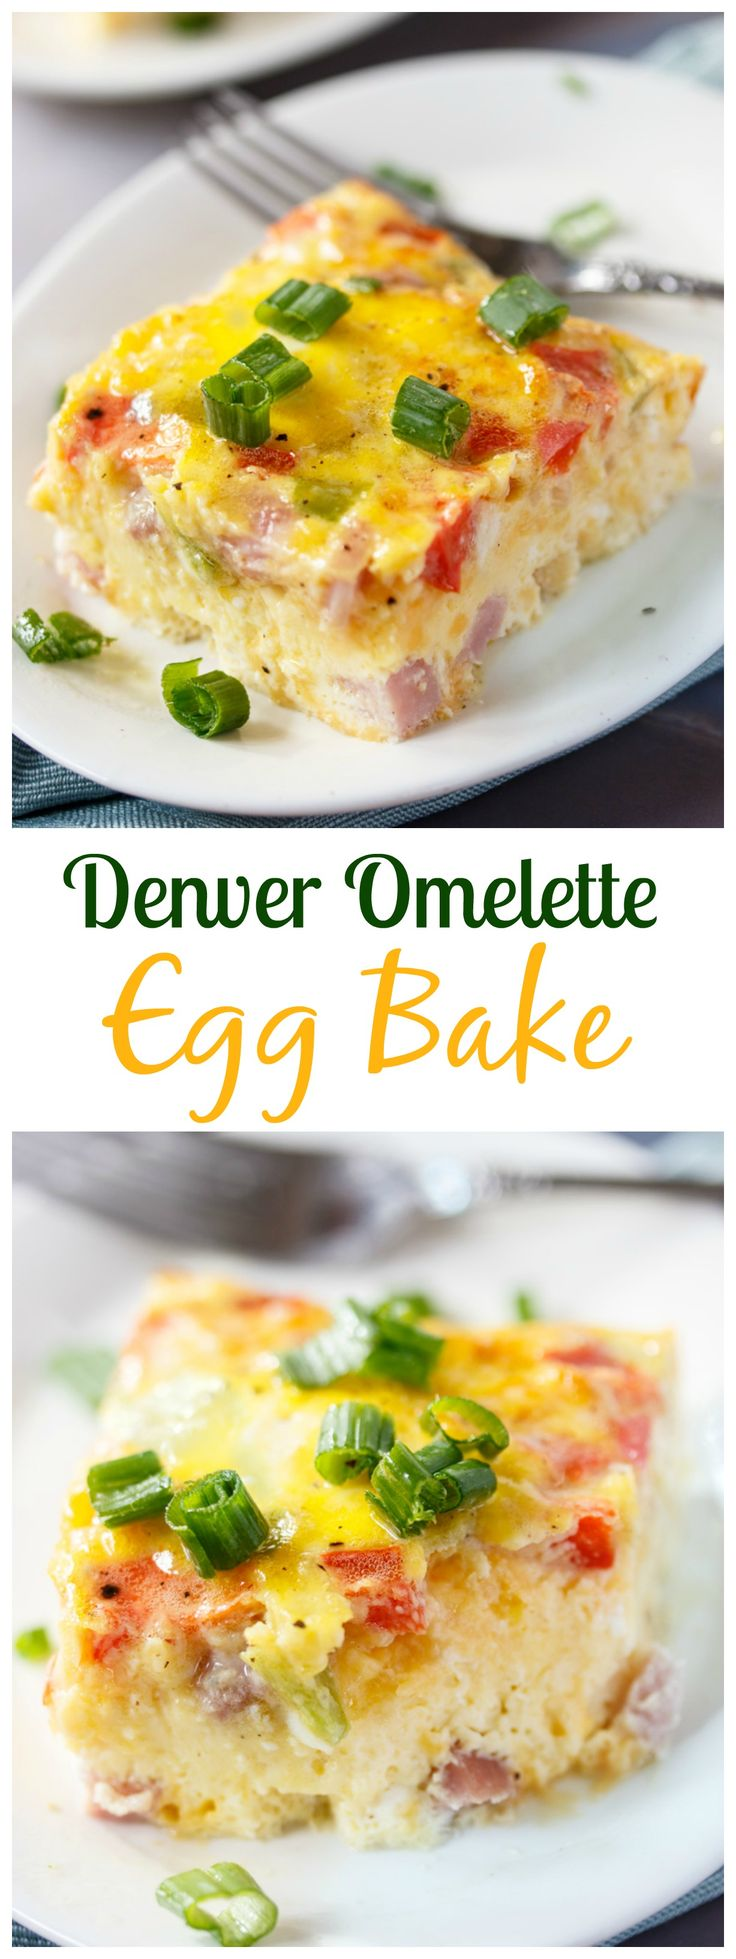 *****This Denver Omelette Egg Bake is loaded with ham, bell peppers, onions and cheese mixed with fluffy eggs and ready in 30 minutes from start to finish!